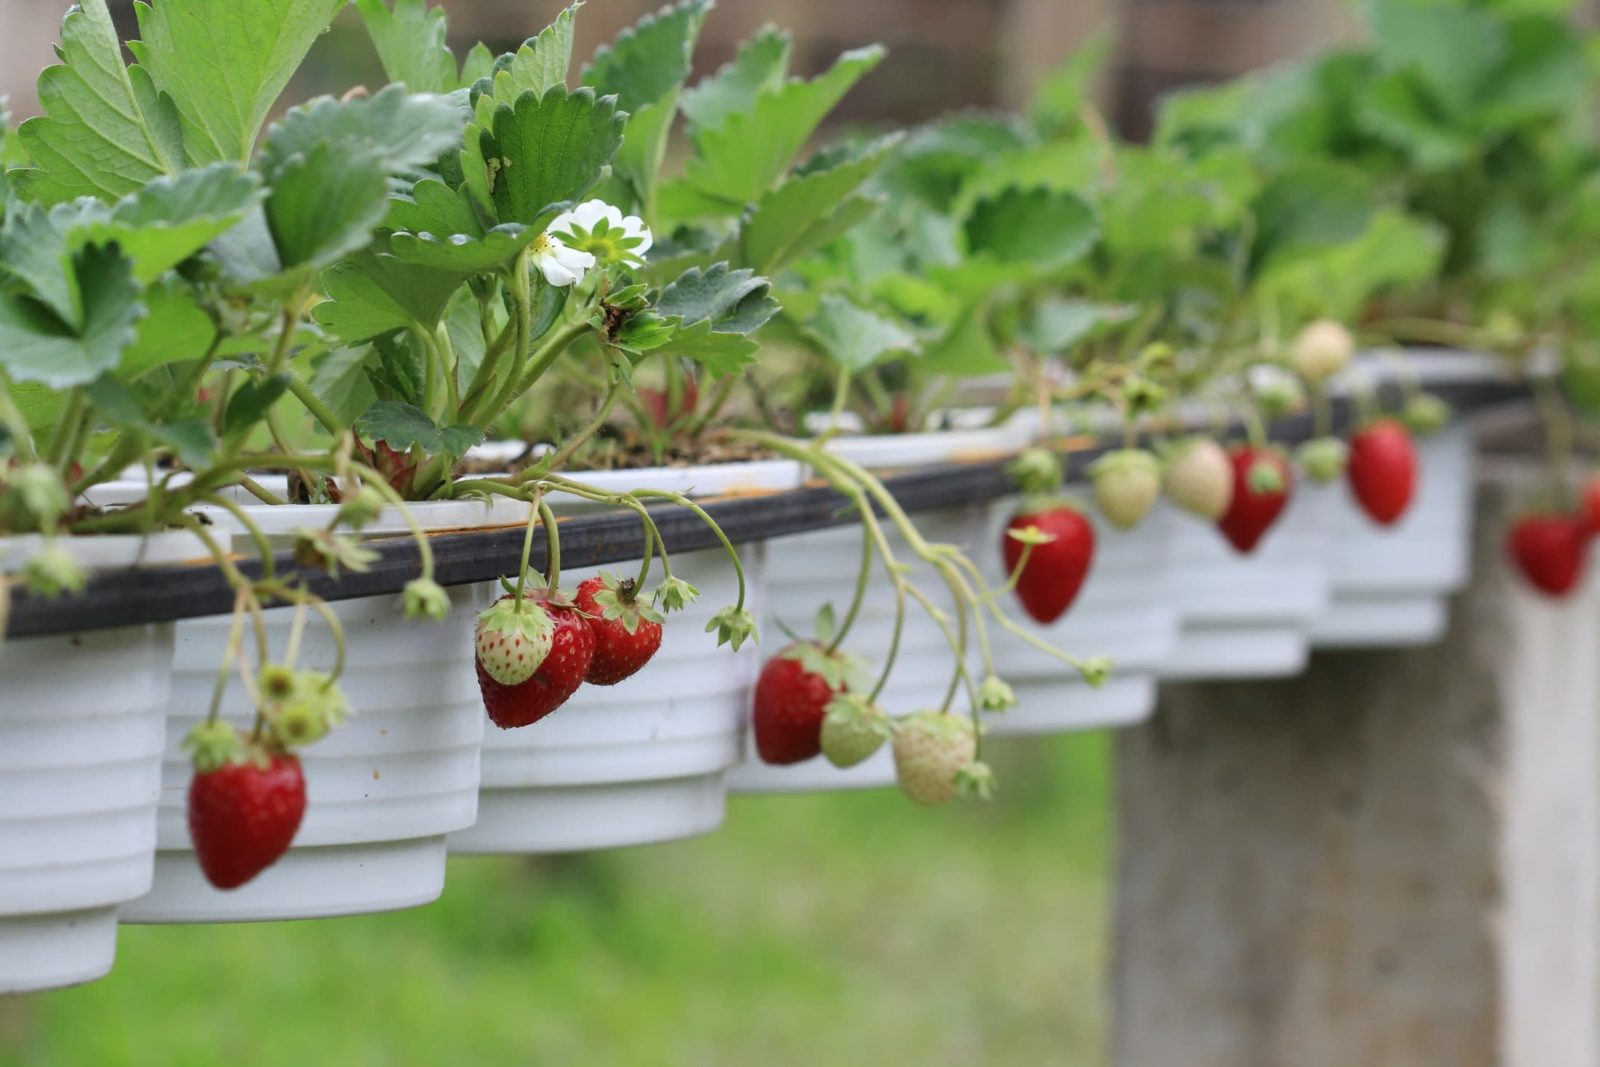 red strawberry fruits hanging from grey planters